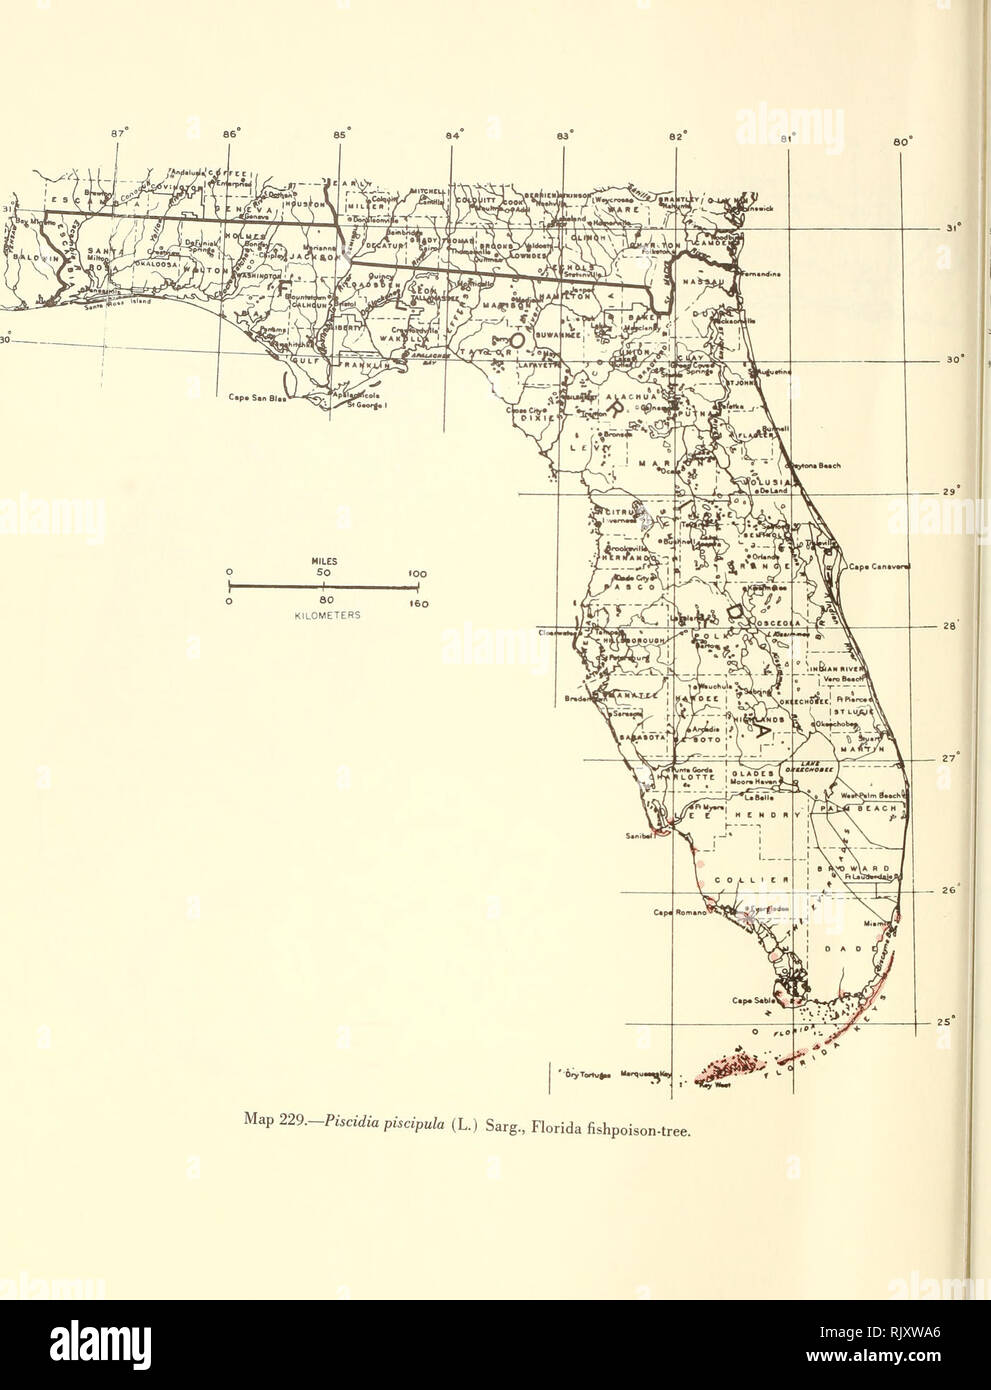 Atlas of United States trees: volume 5. Florida. Trees. Map ... on map of florida national forests, map of florida townships, map of florida wildlife management areas, map of florida fishing, map of florida marinas, map of florida oil, map of florida travel, map of hunting, map of florida panther habitat, map of florida dairy, map of florida watersheds, map of florida fisheries, map of florida sea level rise, map of florida river, map of florida artificial reefs, map of florida canada, map of florida correctional facility, map of florida inland waterways, map of florida population demographics, map of university of south florida,